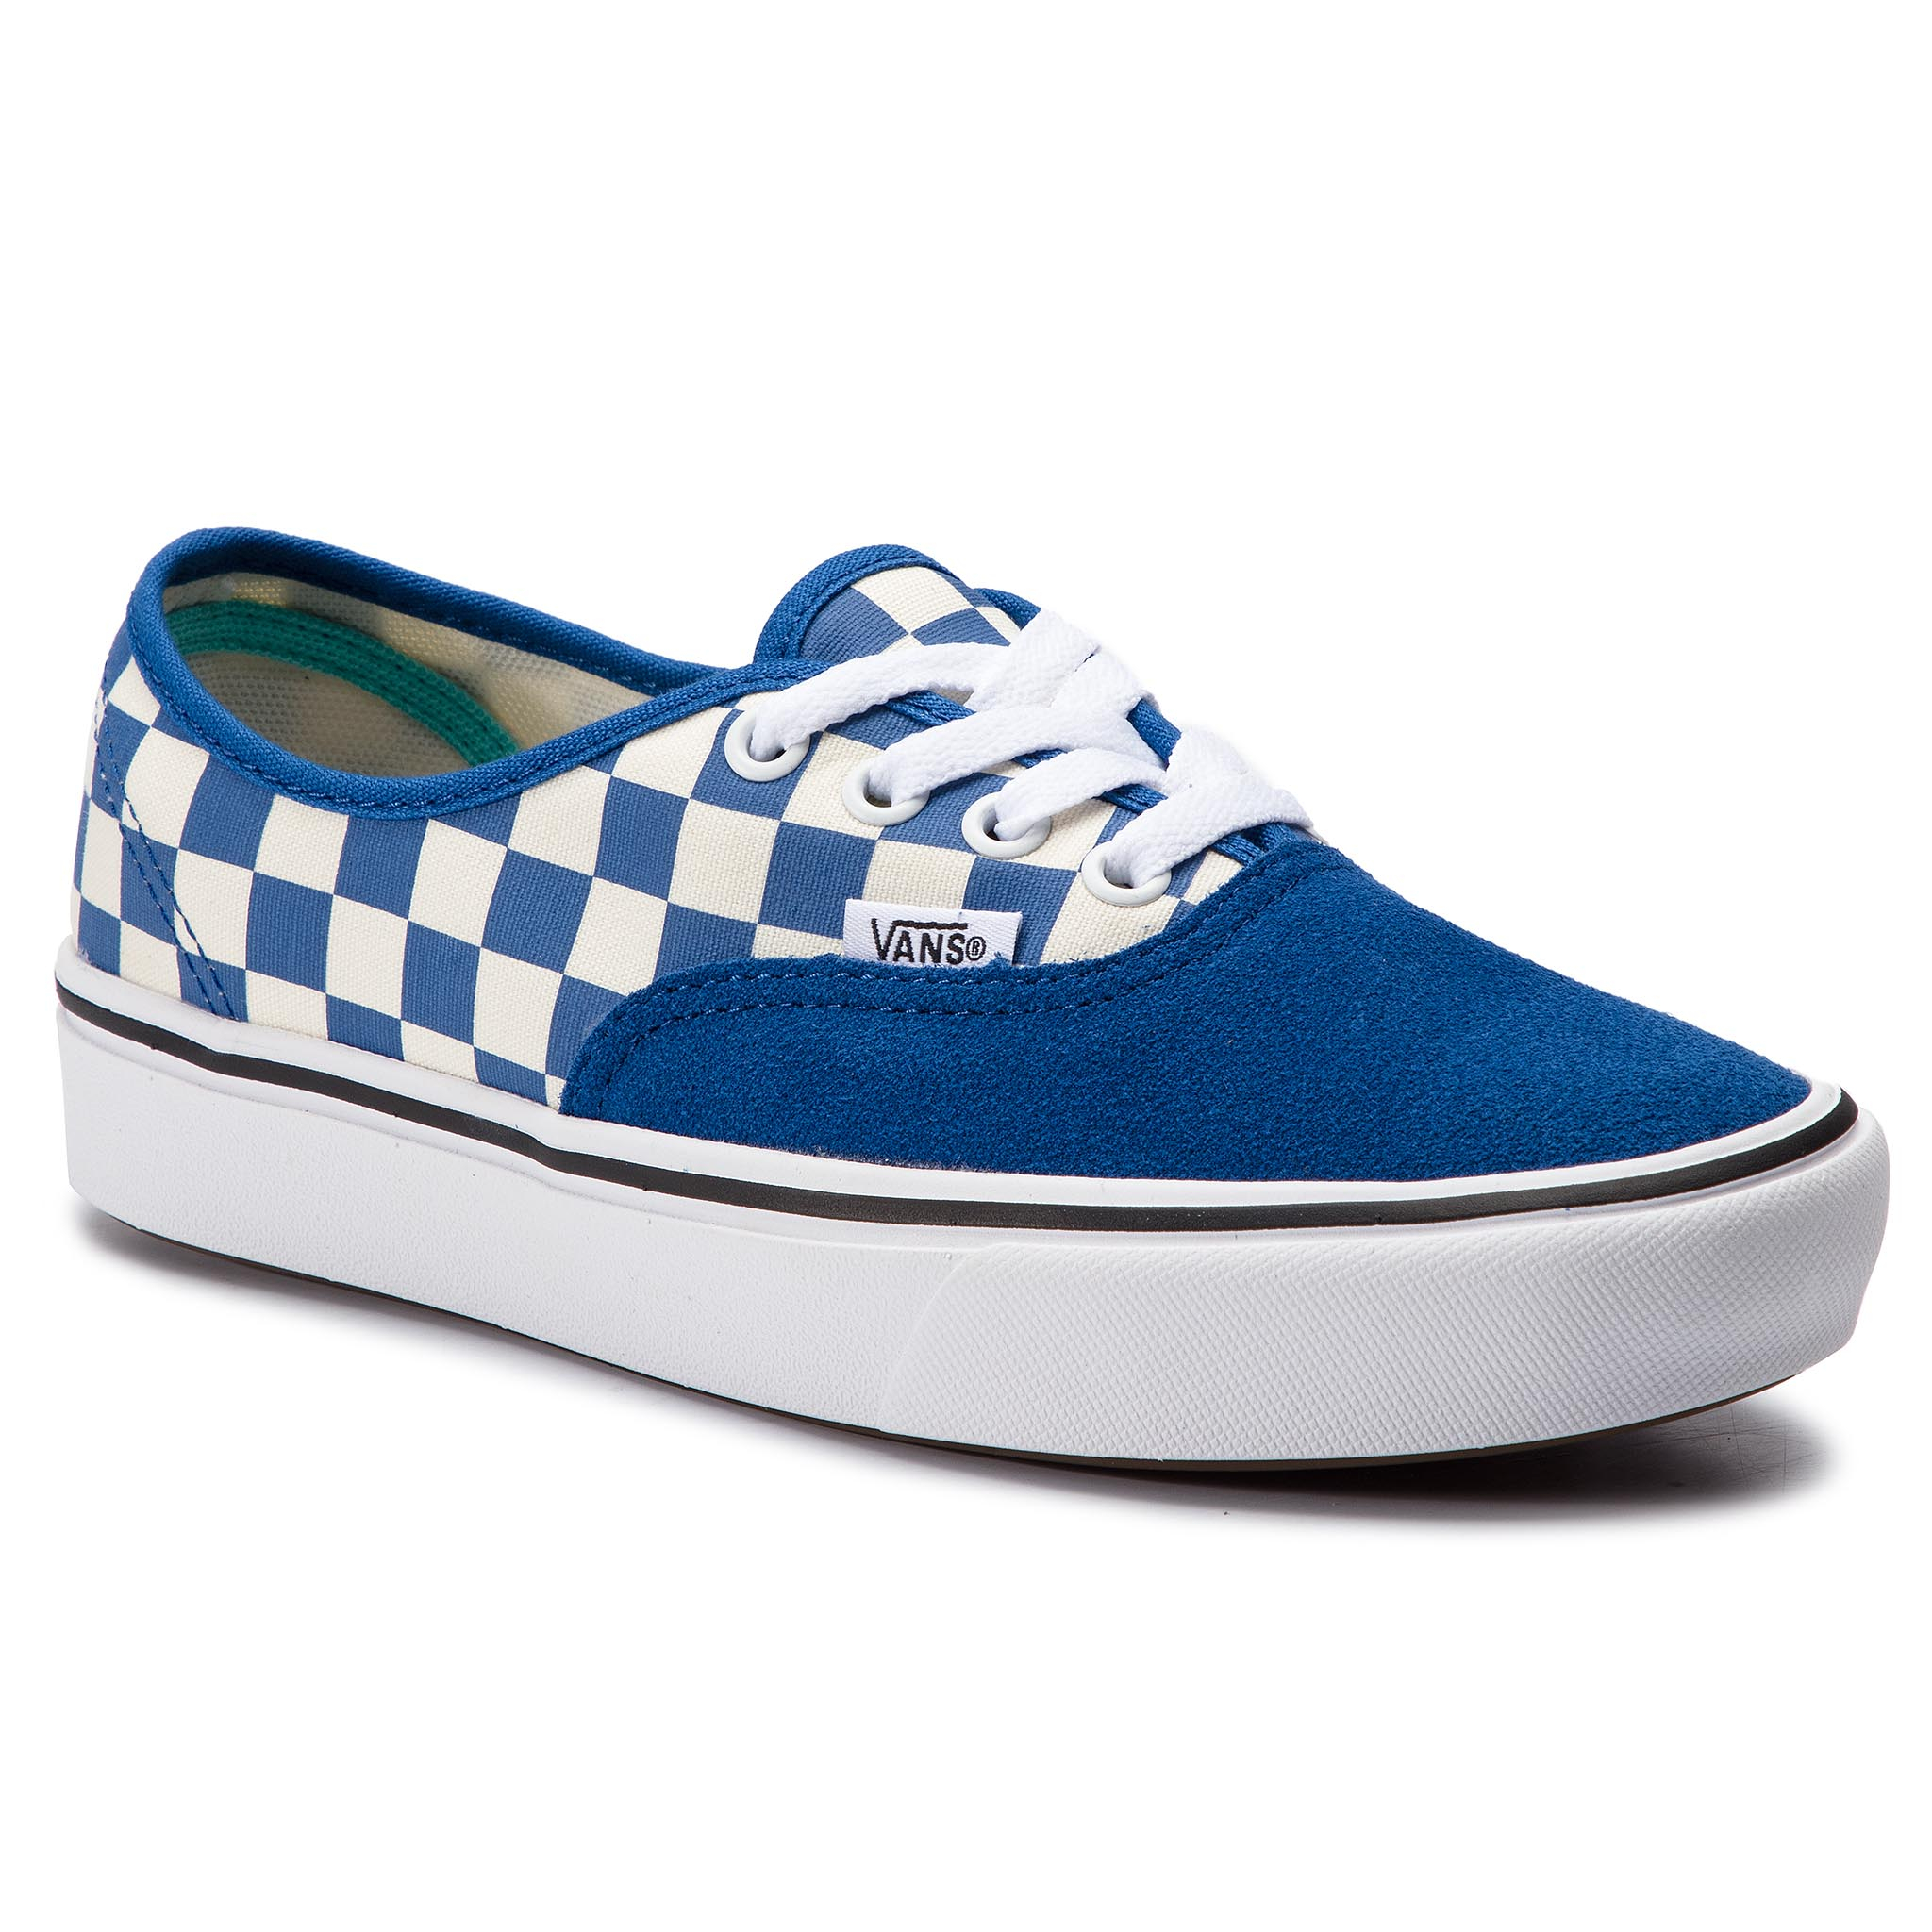 Teniși Vans - Comfycush Authent Vn0a3wm7vna1 (Checker) Lapis Blue/True imagine epantofi.ro 2021